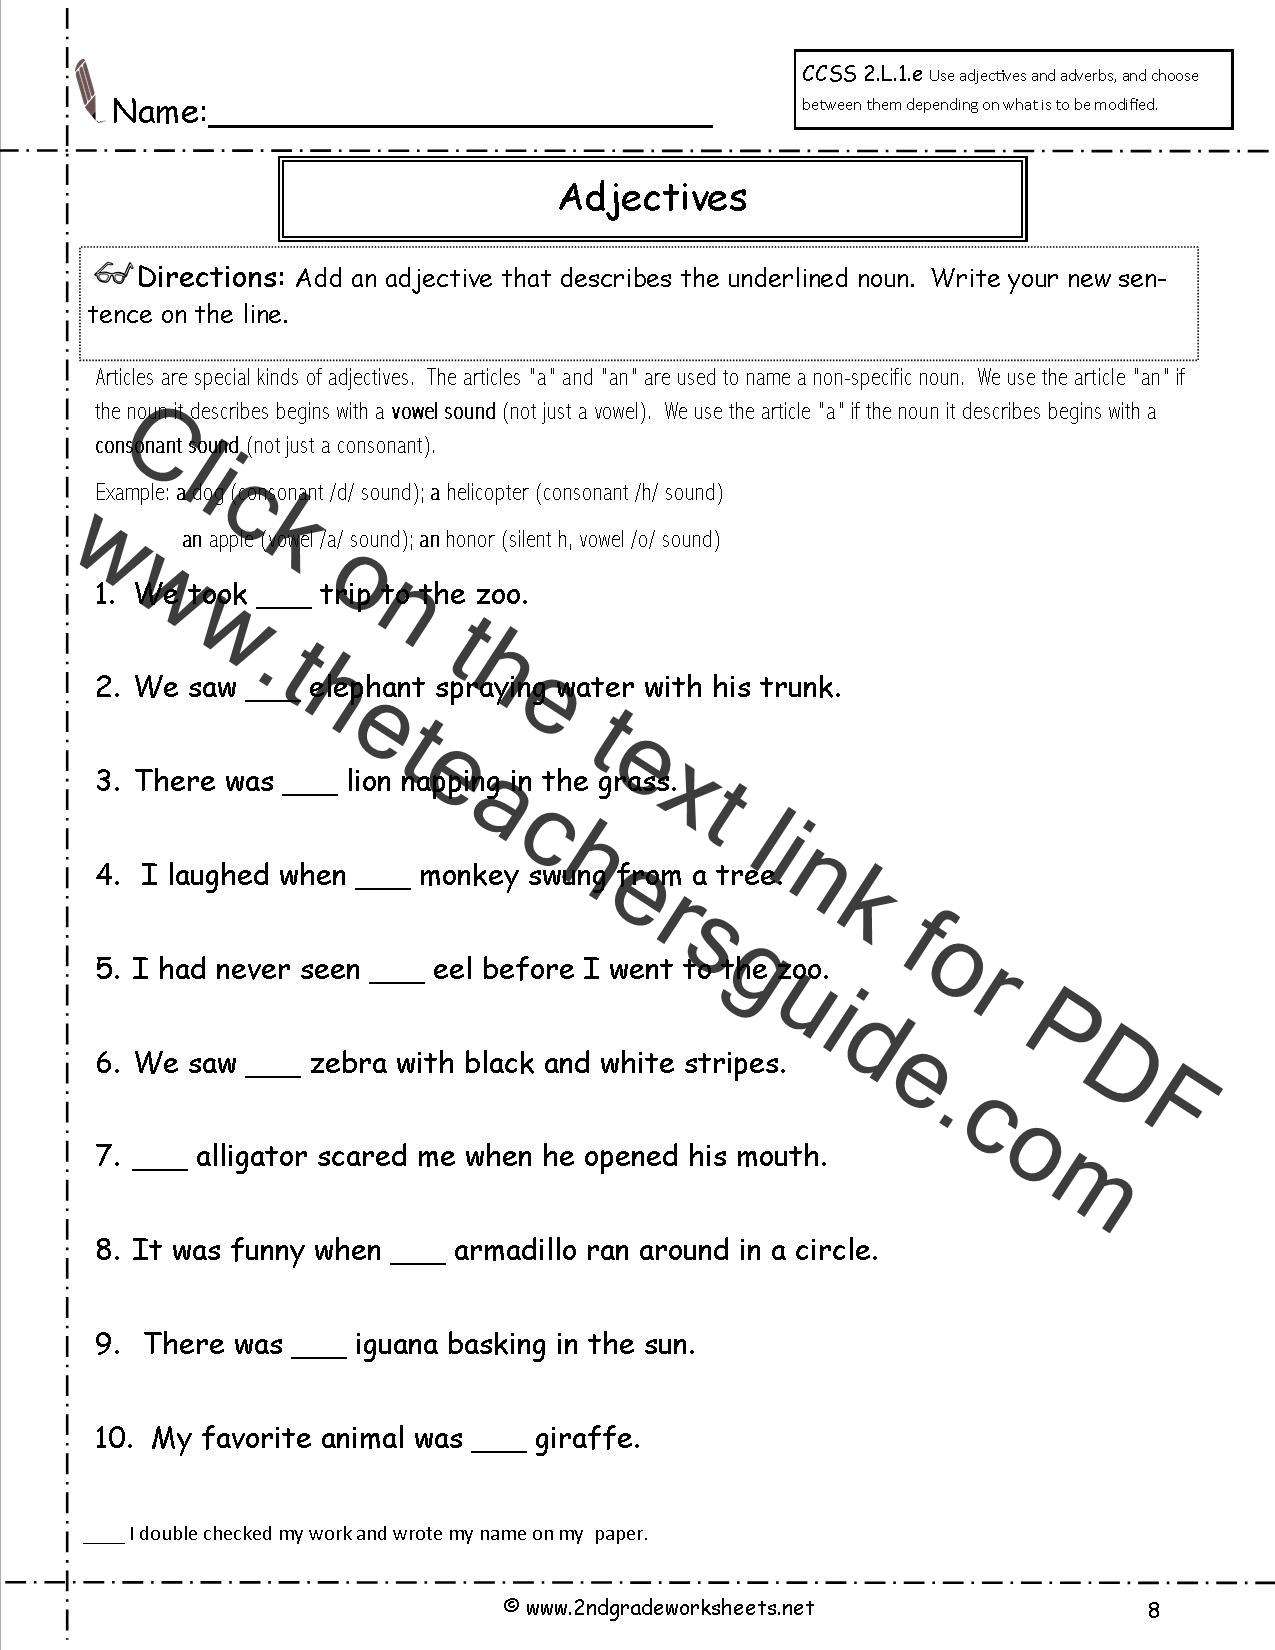 Worksheets Shurley English Worksheets free languagegrammar worksheets and printouts adjectives worksheets